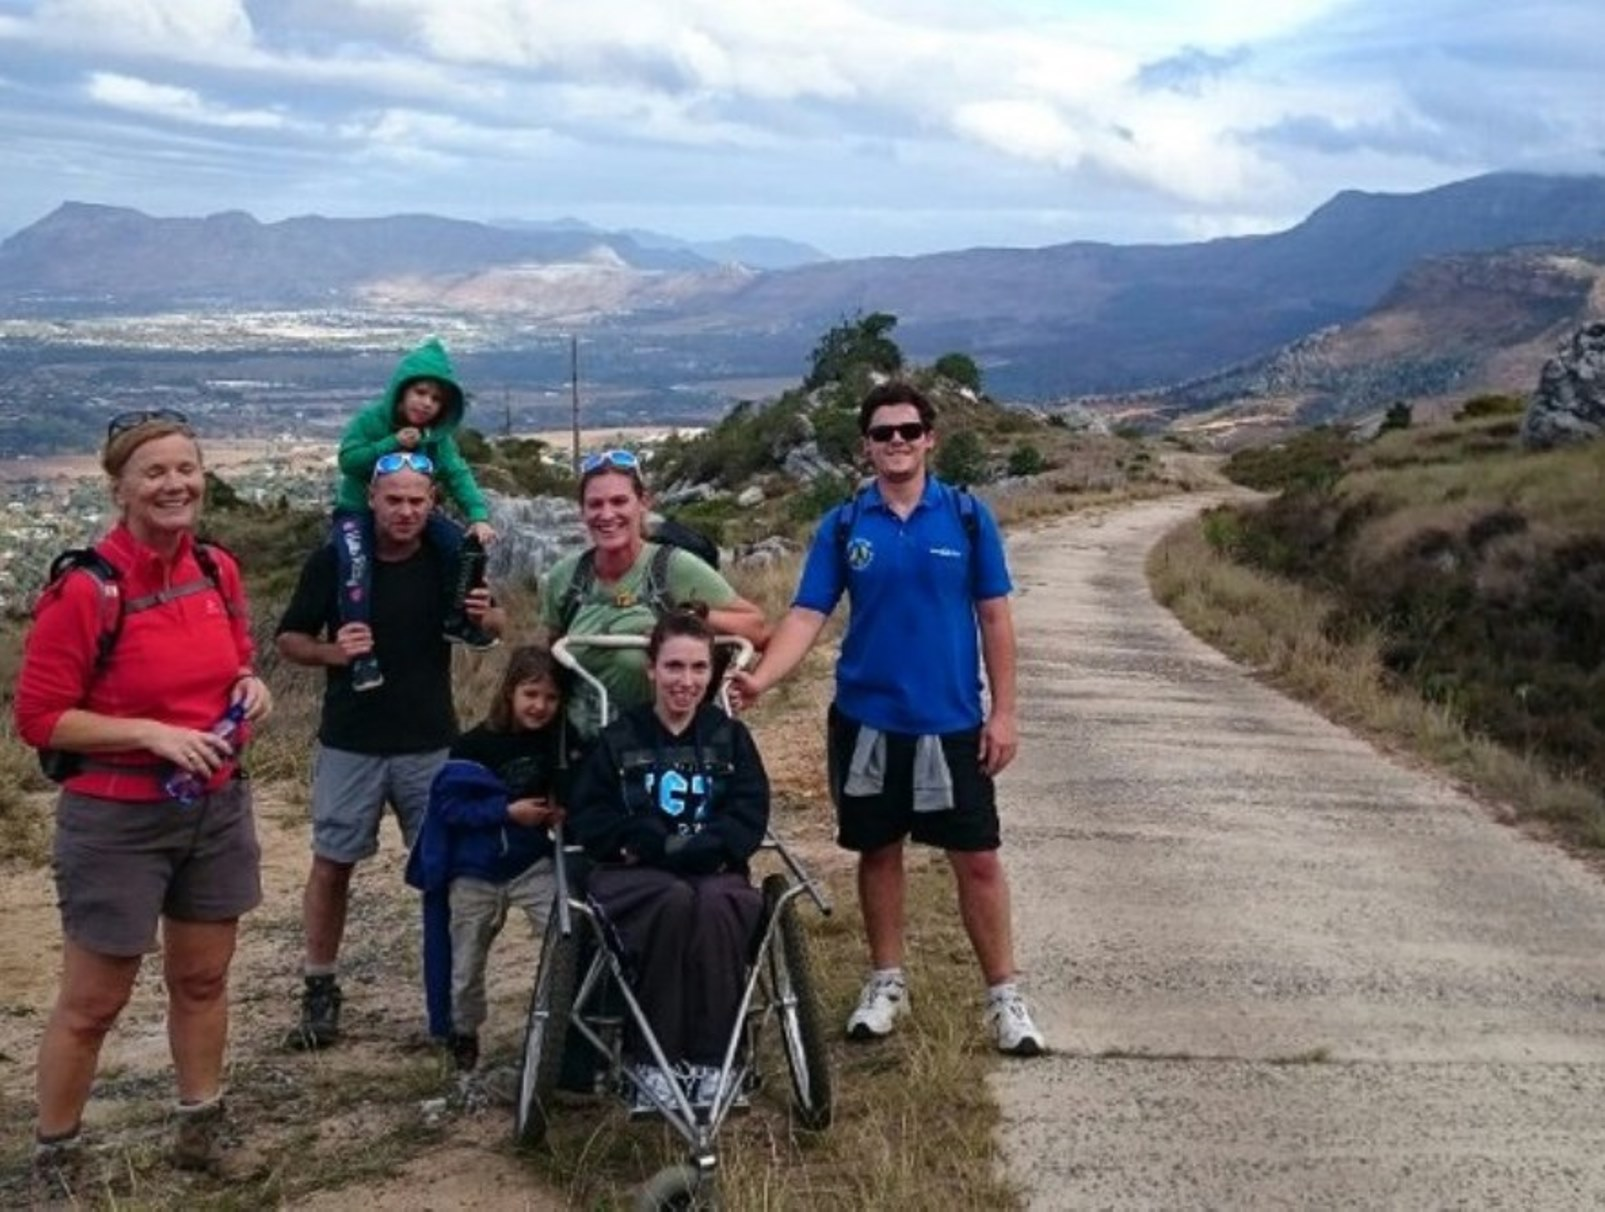 First Female Quadriplegic Summits Mount Kilimanjaro 1